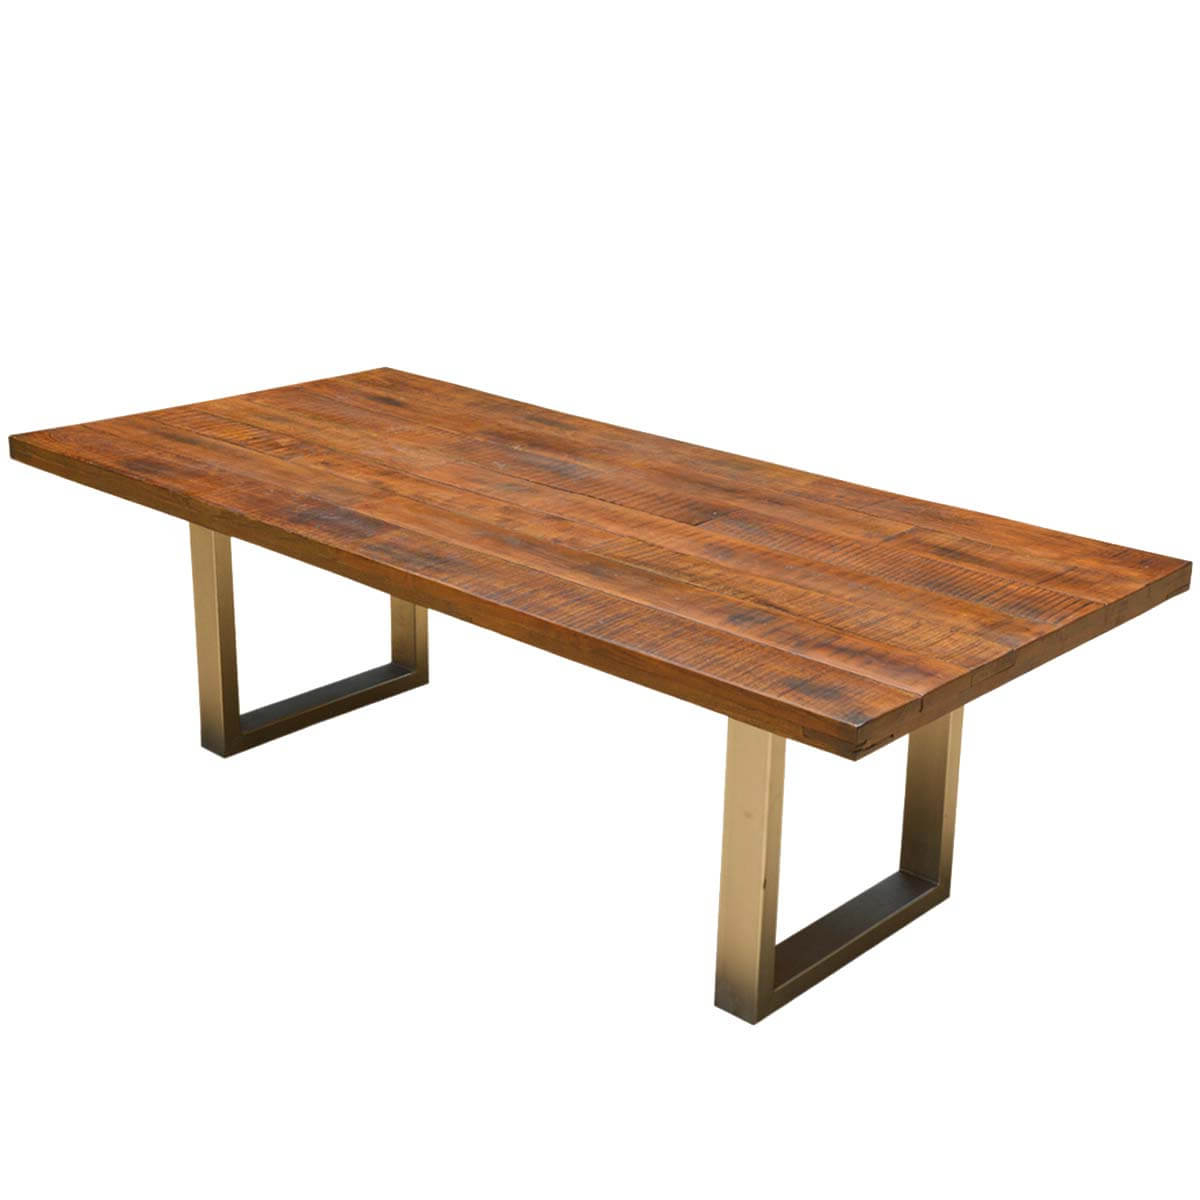 Well Known Solid Acacia Wood Dining Tables For Acacia Lyon Large Contemporary Rustic Solid Acacia Wood Dining Table (View 1 of 25)